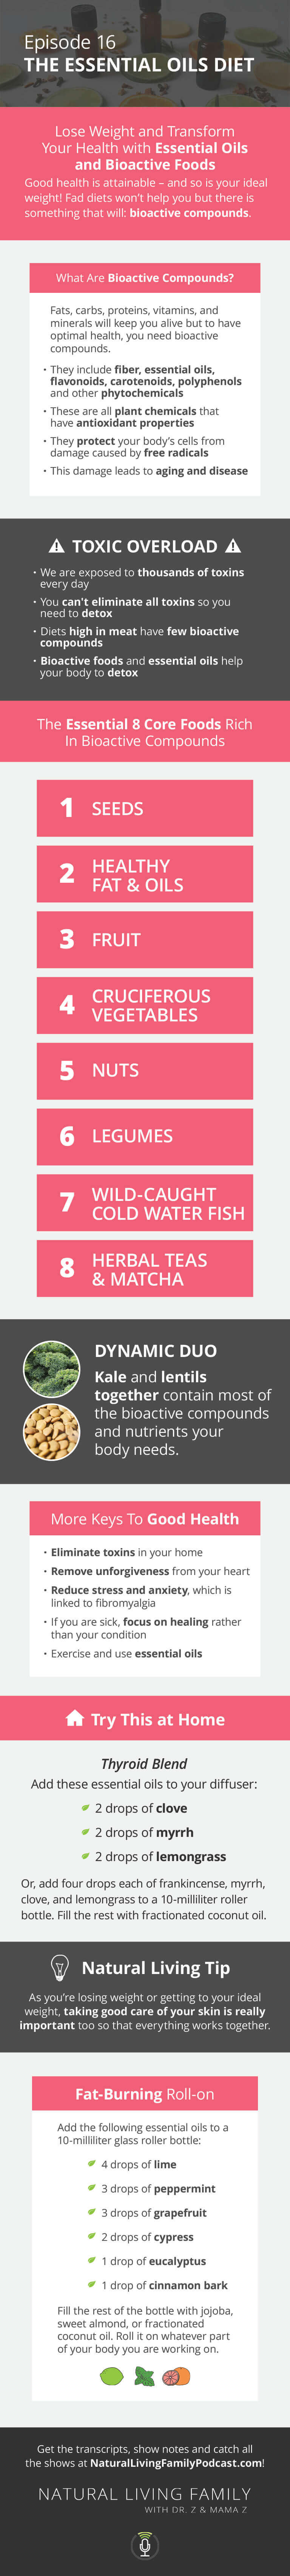 The Essential Oils Diet Lose Weight and Transform Your Health with the Power of Essential Oils and Bioactive Foods Podcast Episode 16 Infographic